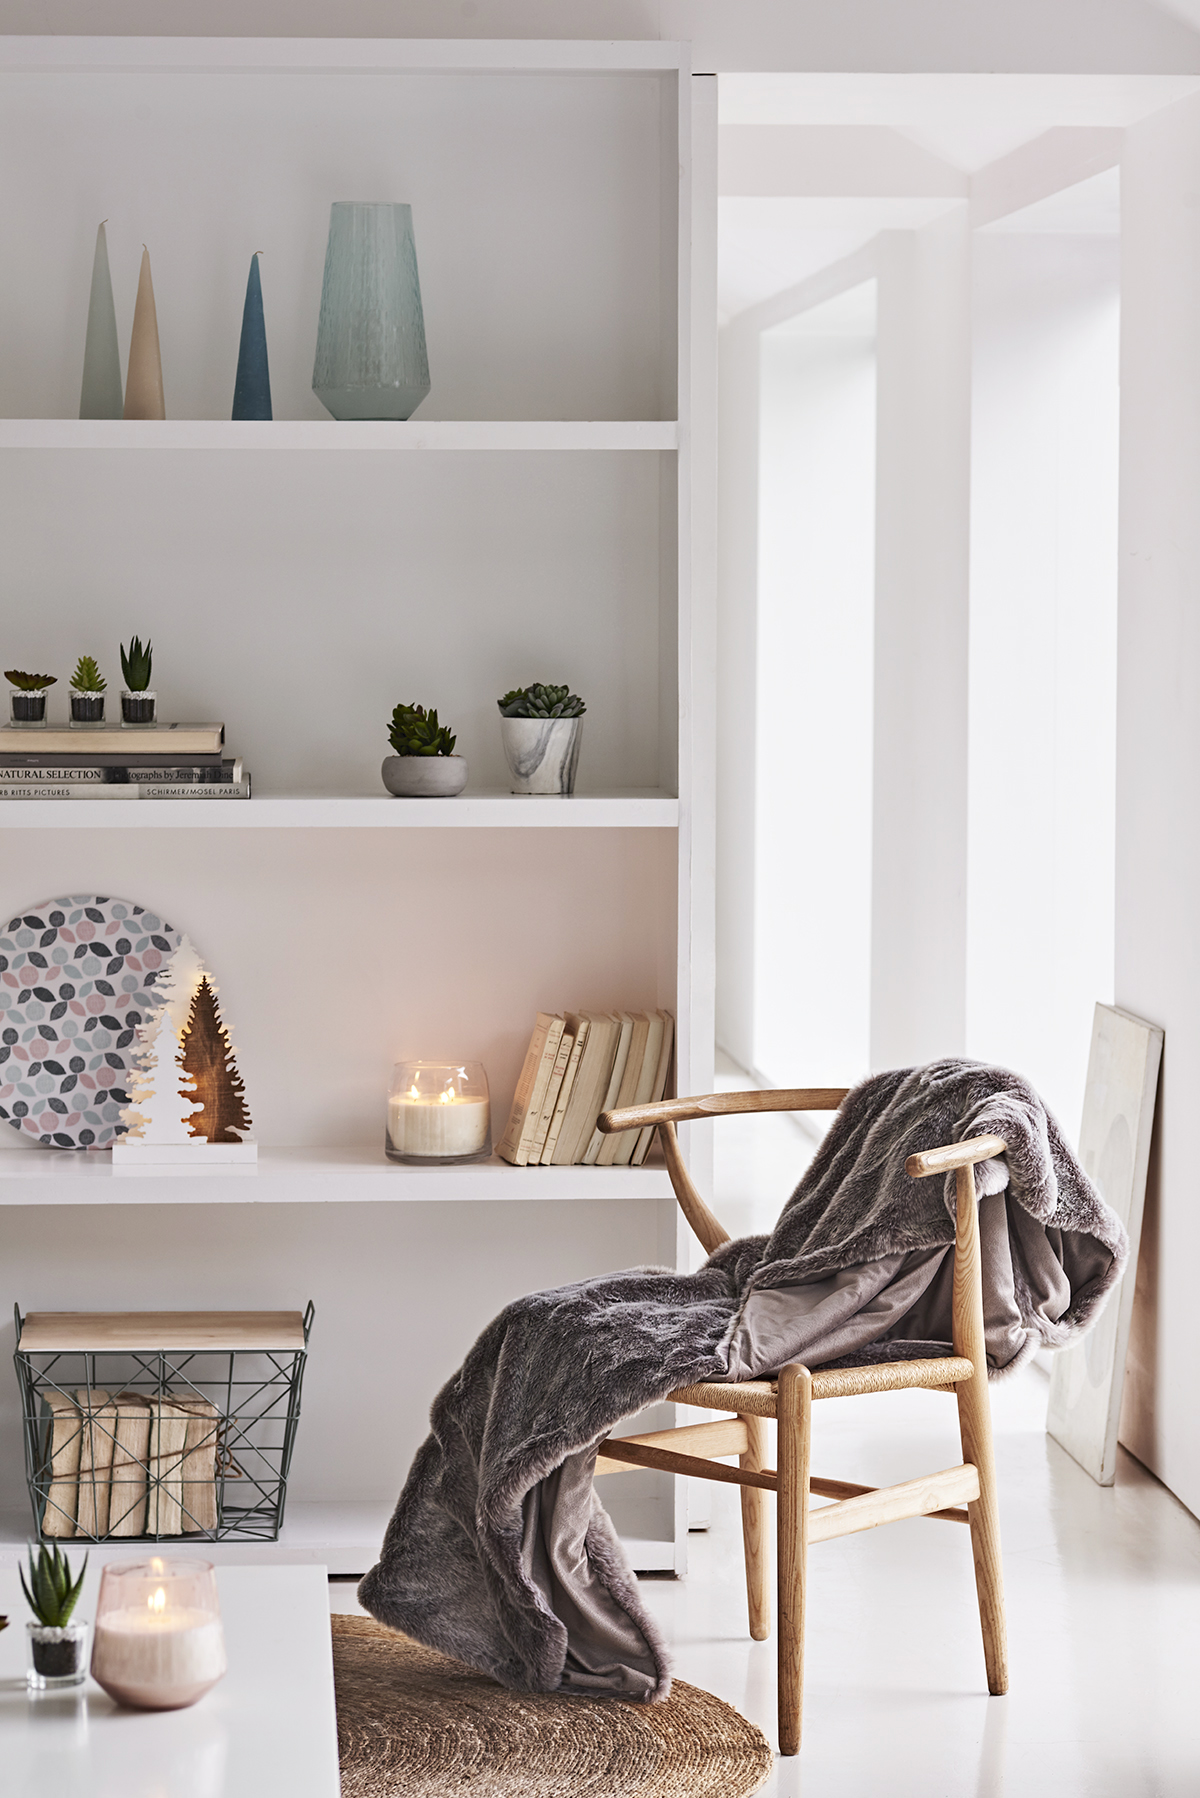 Sainsburys Nordic Skies Range AW17 with items from £3.25. Image: Sainsbury's